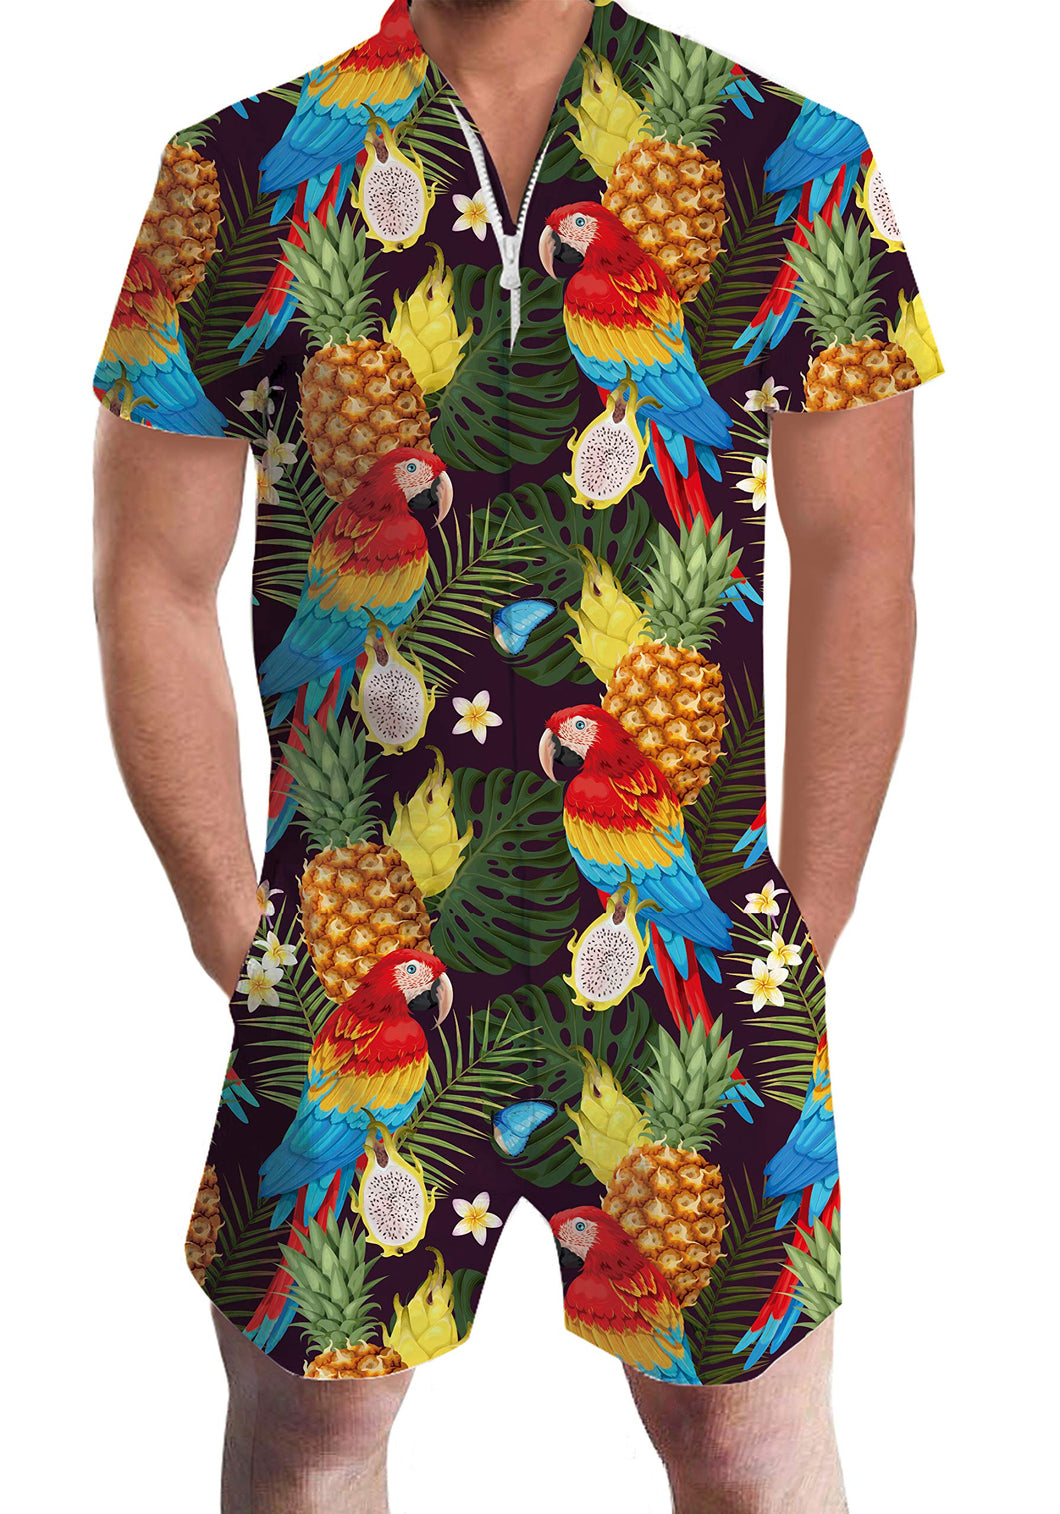 Hawaiian Parrot Pineapple Casual Zipper Cargo Pants Rompers